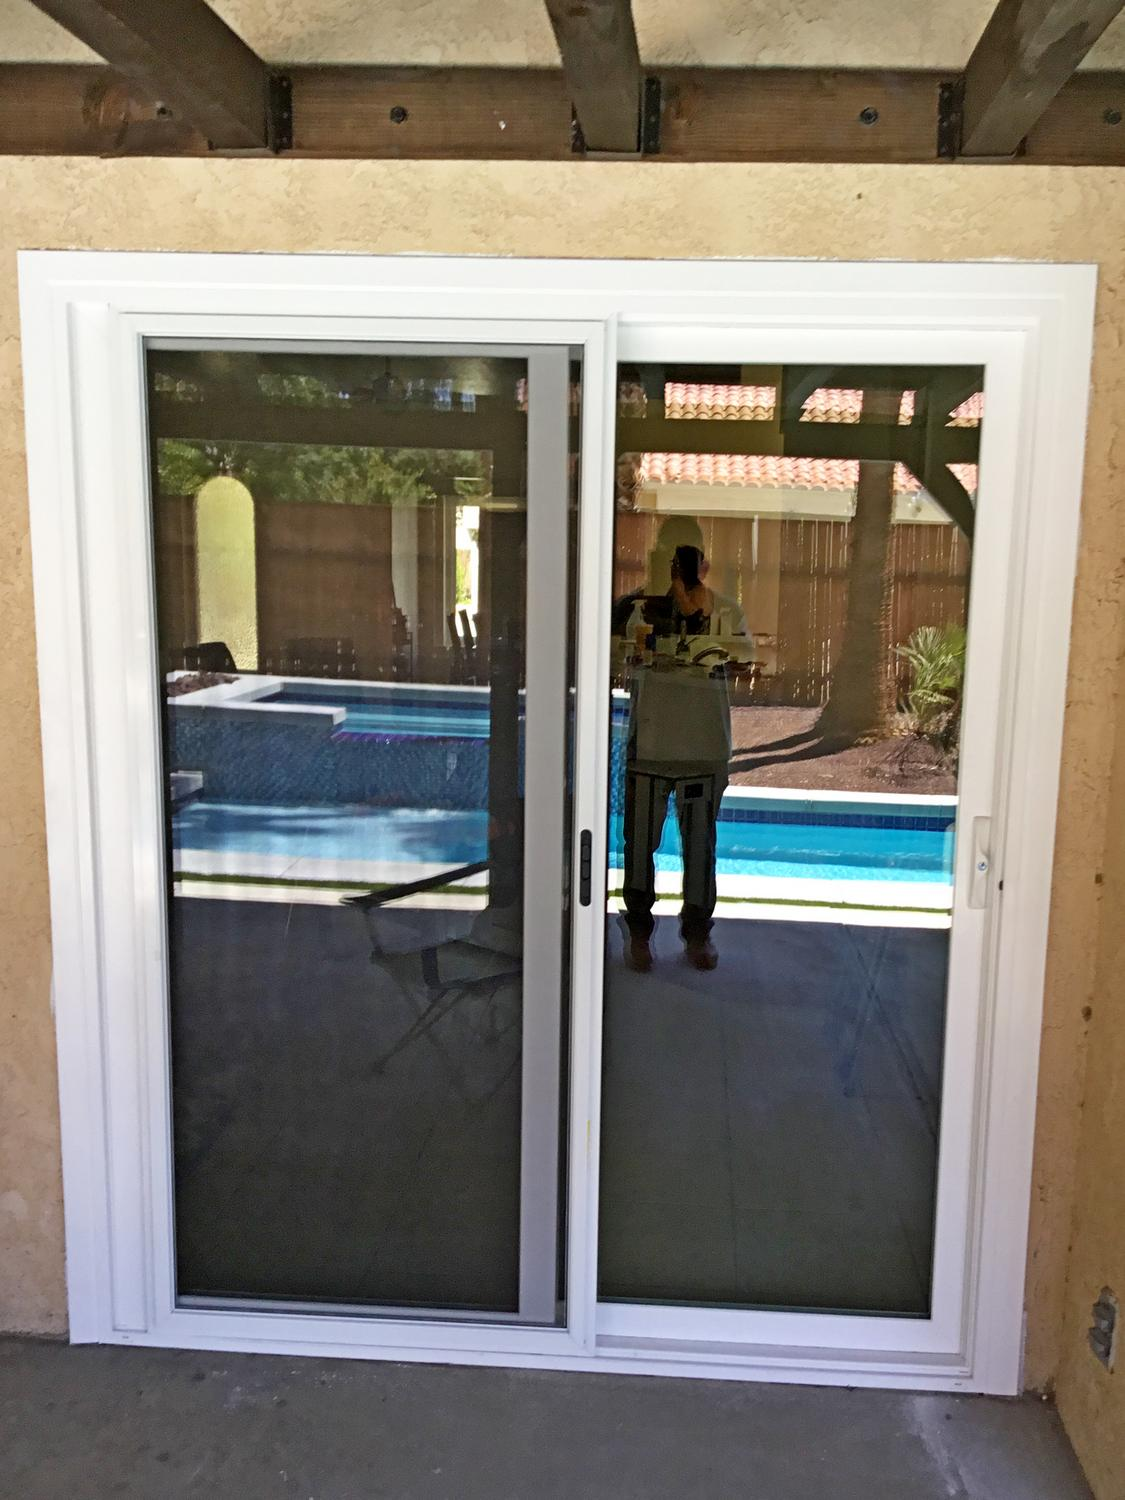 Window & Patio Door Replacement in Hemet, CA